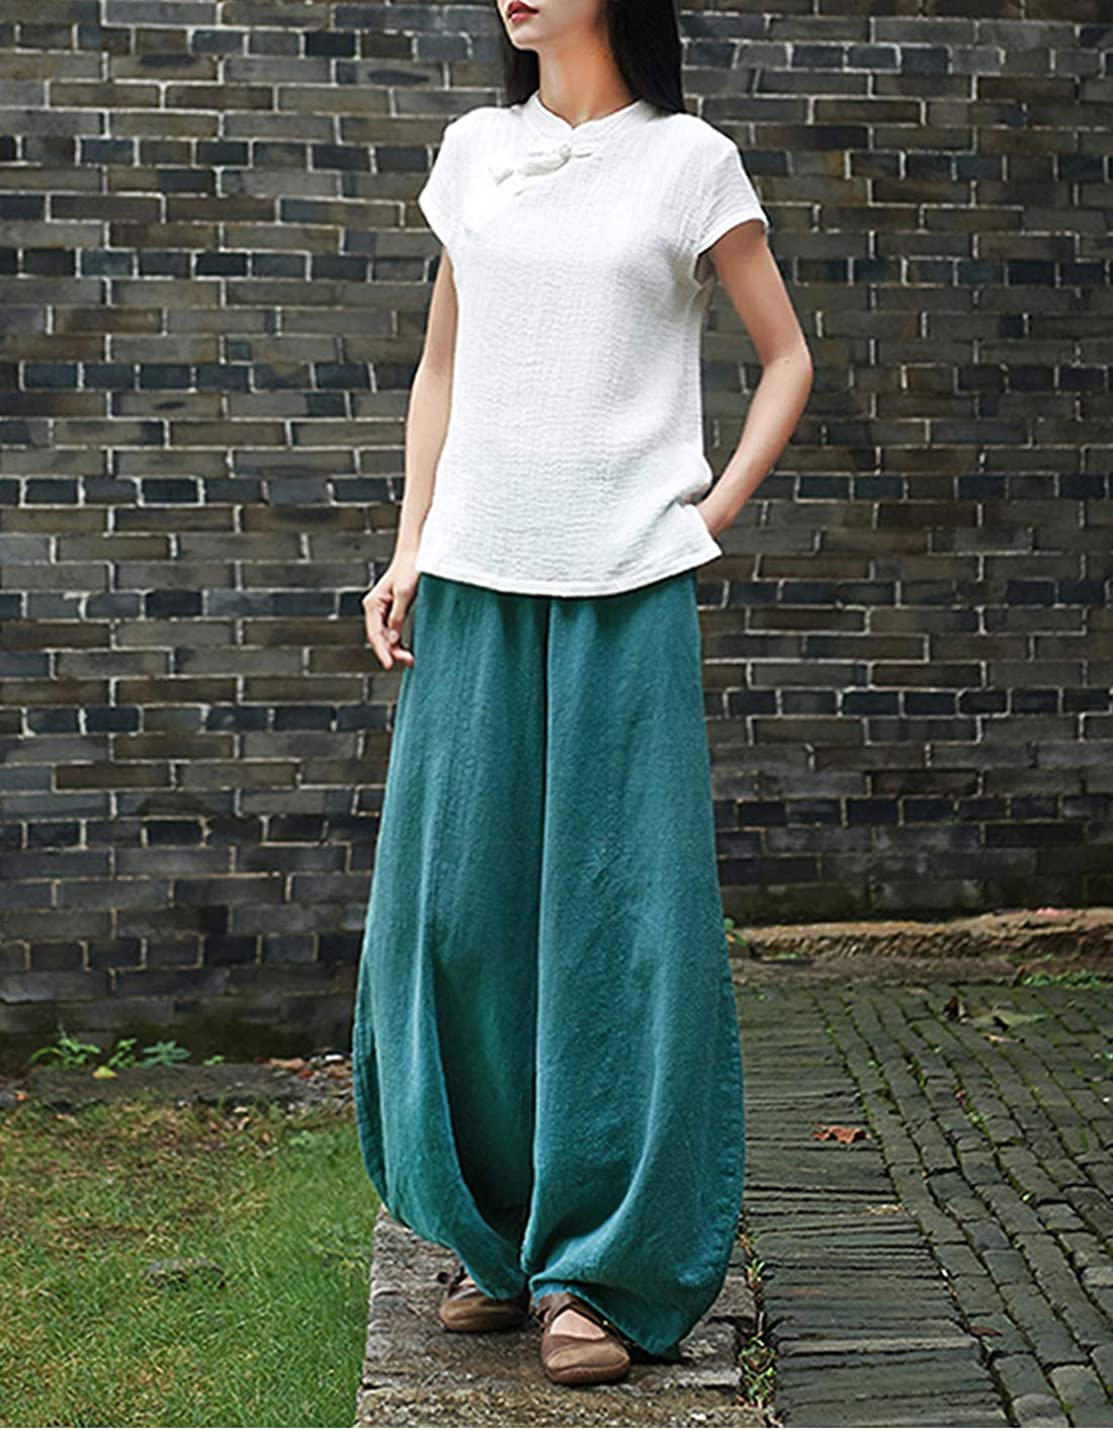 Yeokou Women's Casual Elastic Baggy Cotton Linen Tapered Lantern Trousers Pants Bloomers